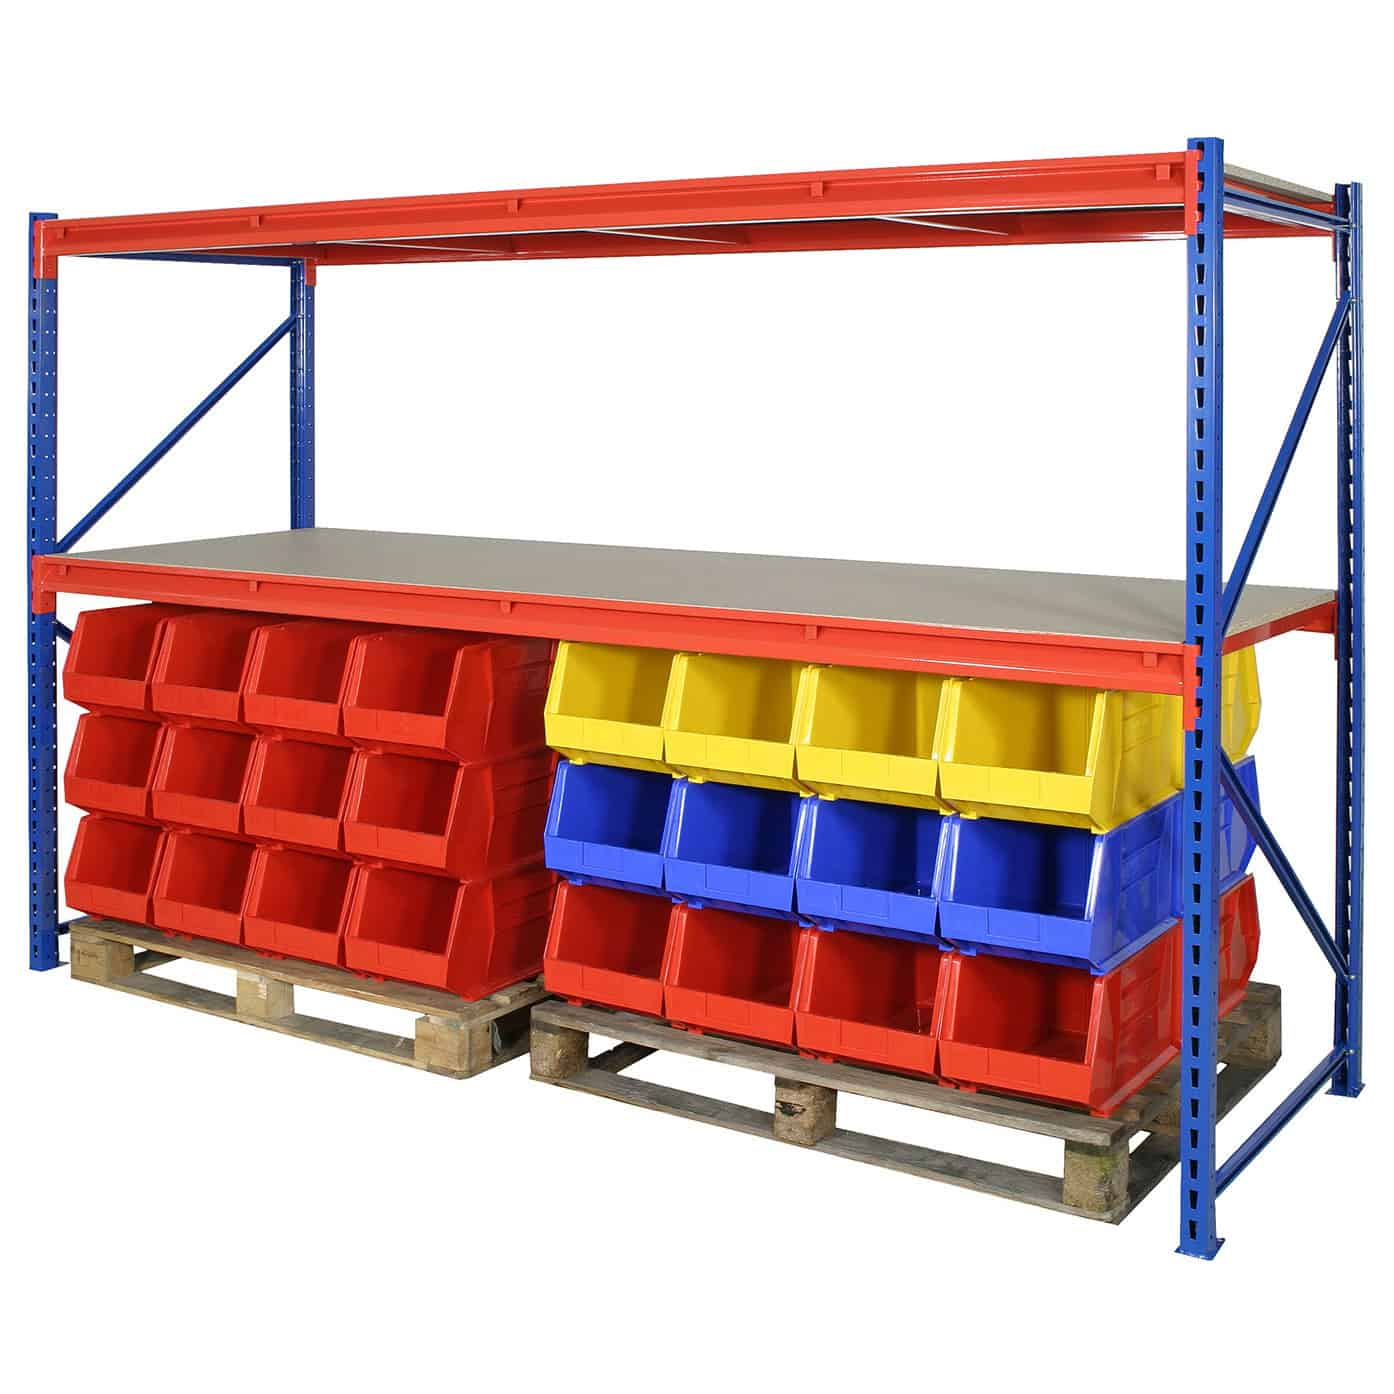 Heavy Duty Longspan Steel Shelving System